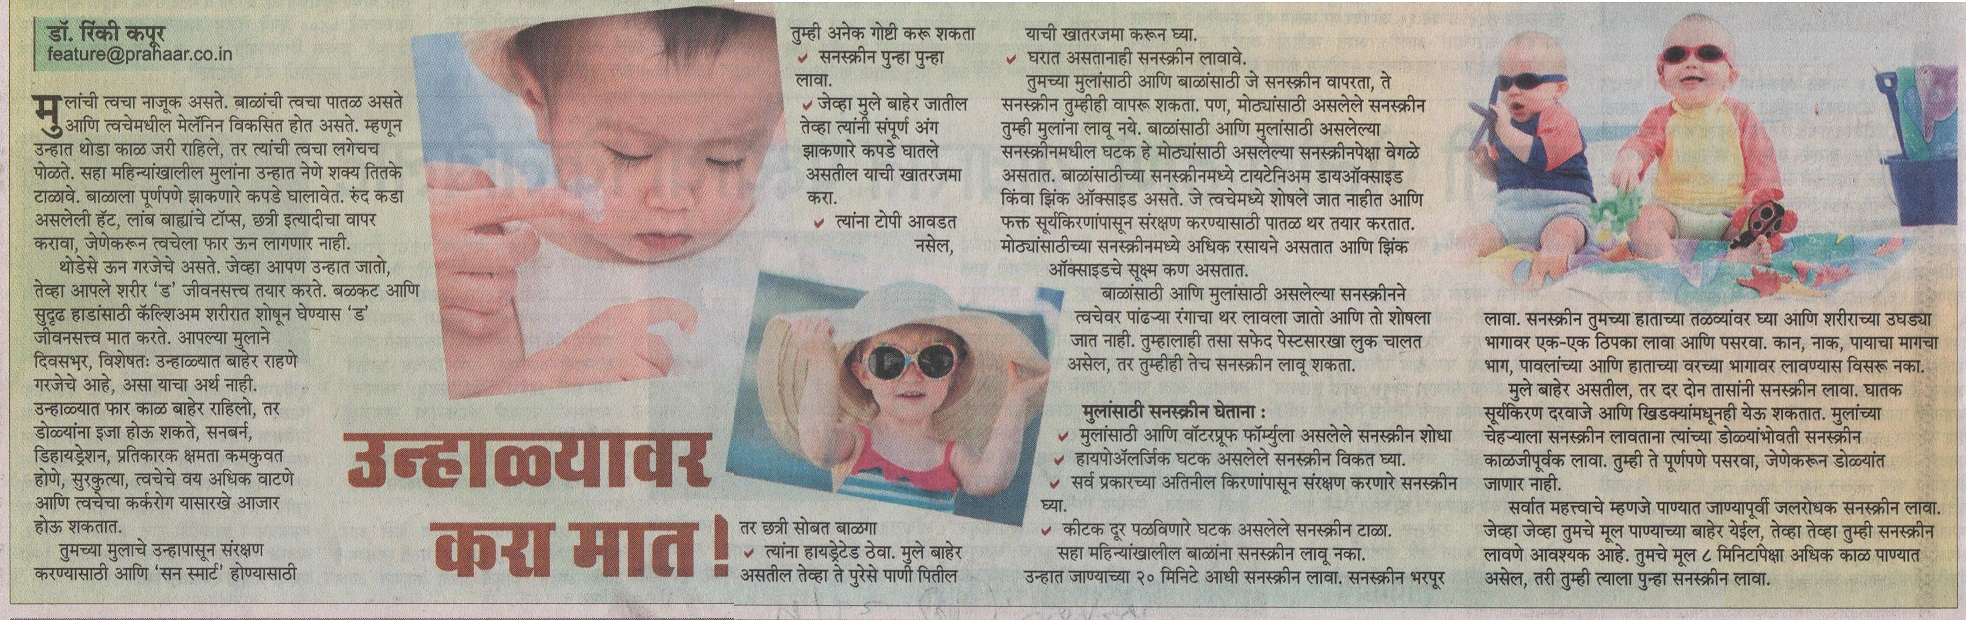 Kids And Organic Sunscreen - Prahar